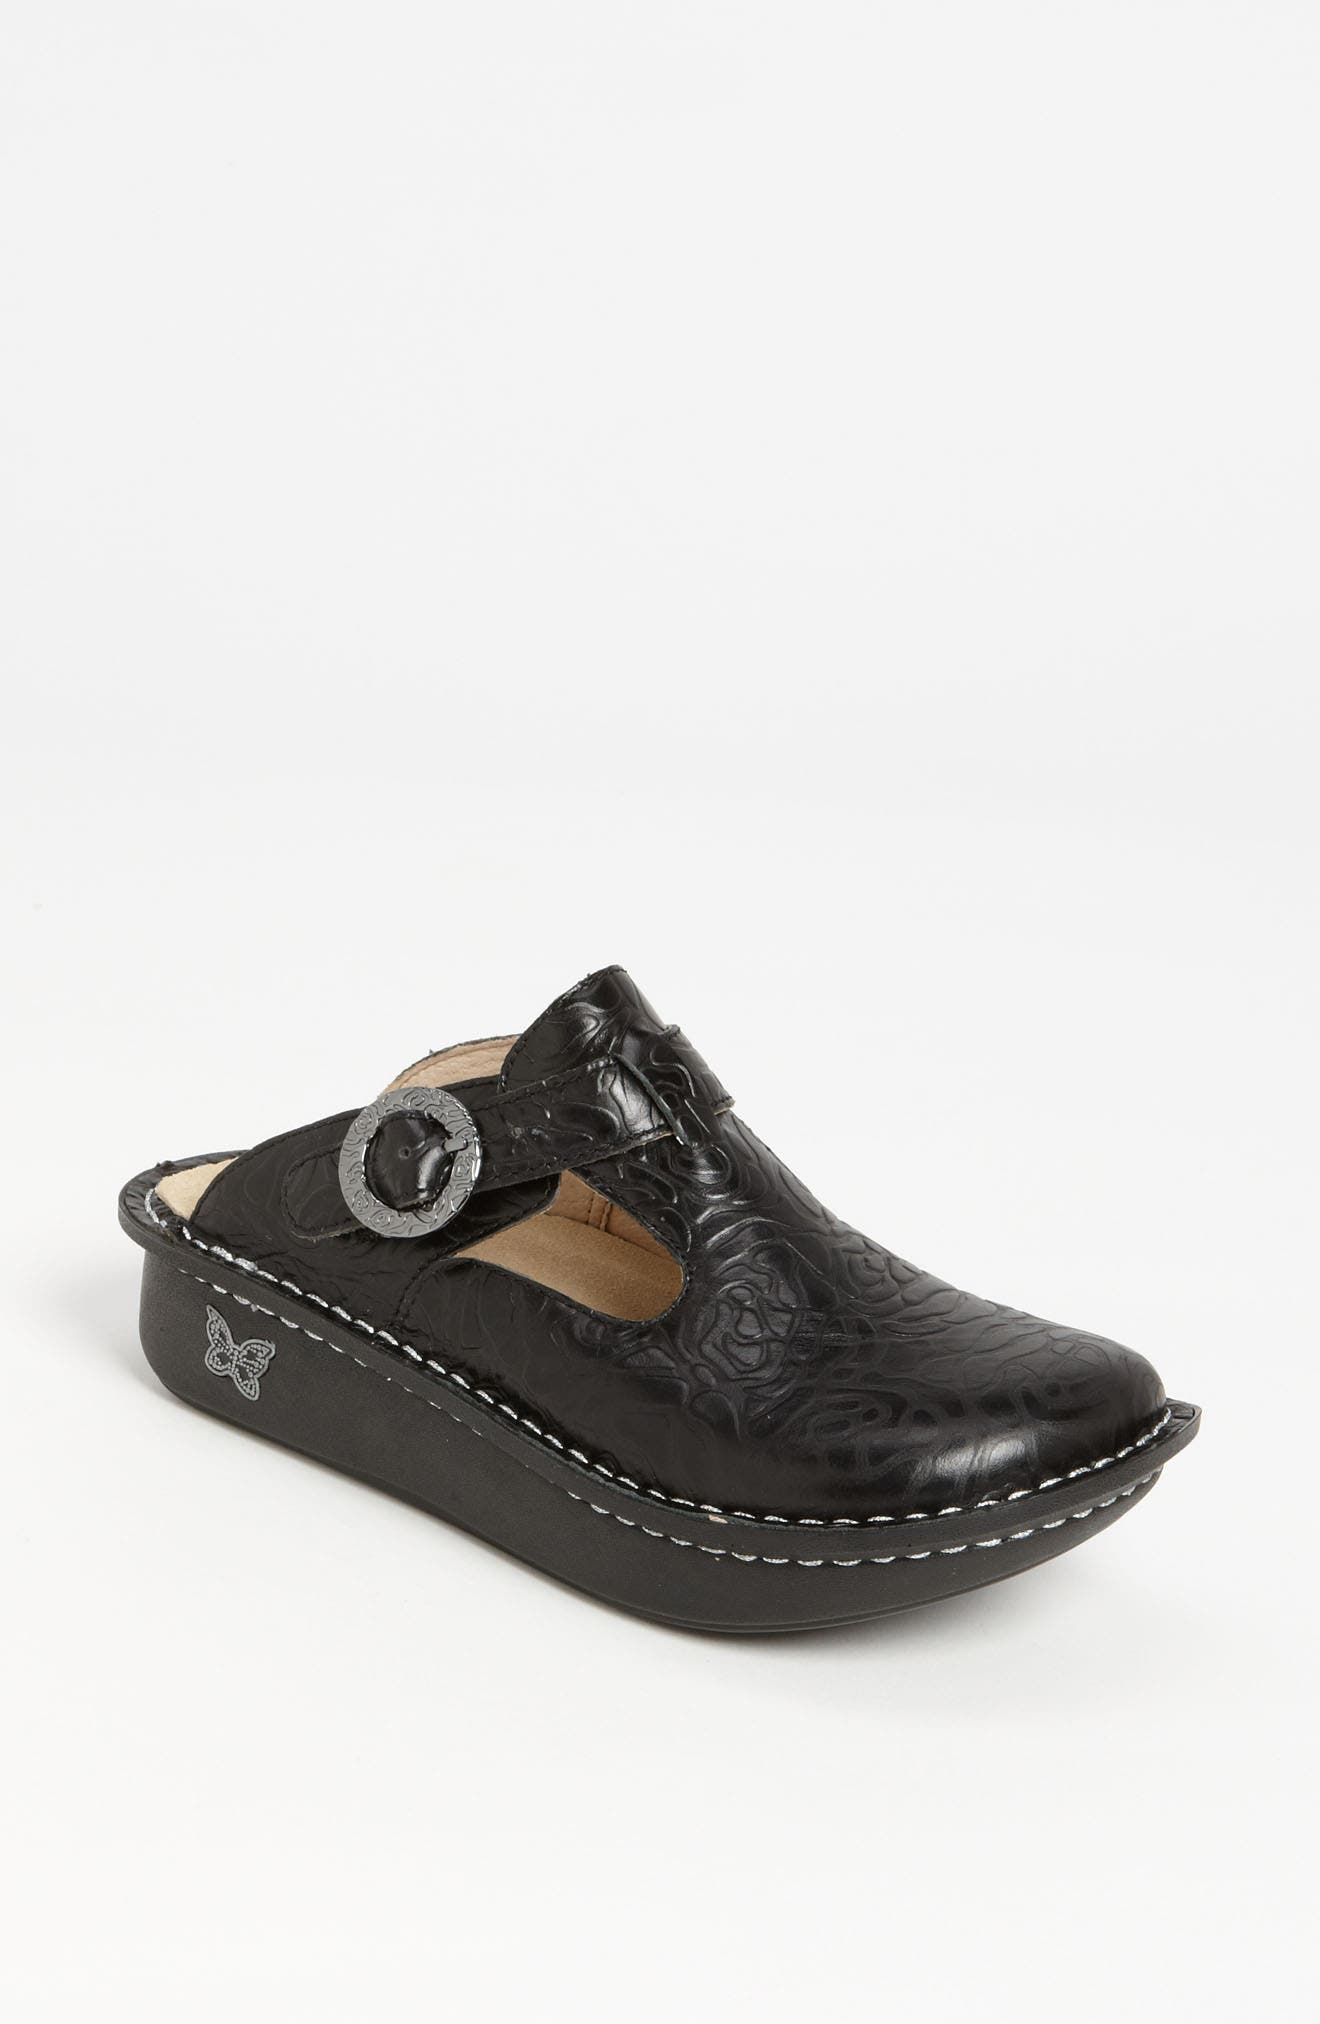 'Classic' Clog,                             Alternate thumbnail 2, color,                             BLACK EMBOSSED ROSE LEATHER